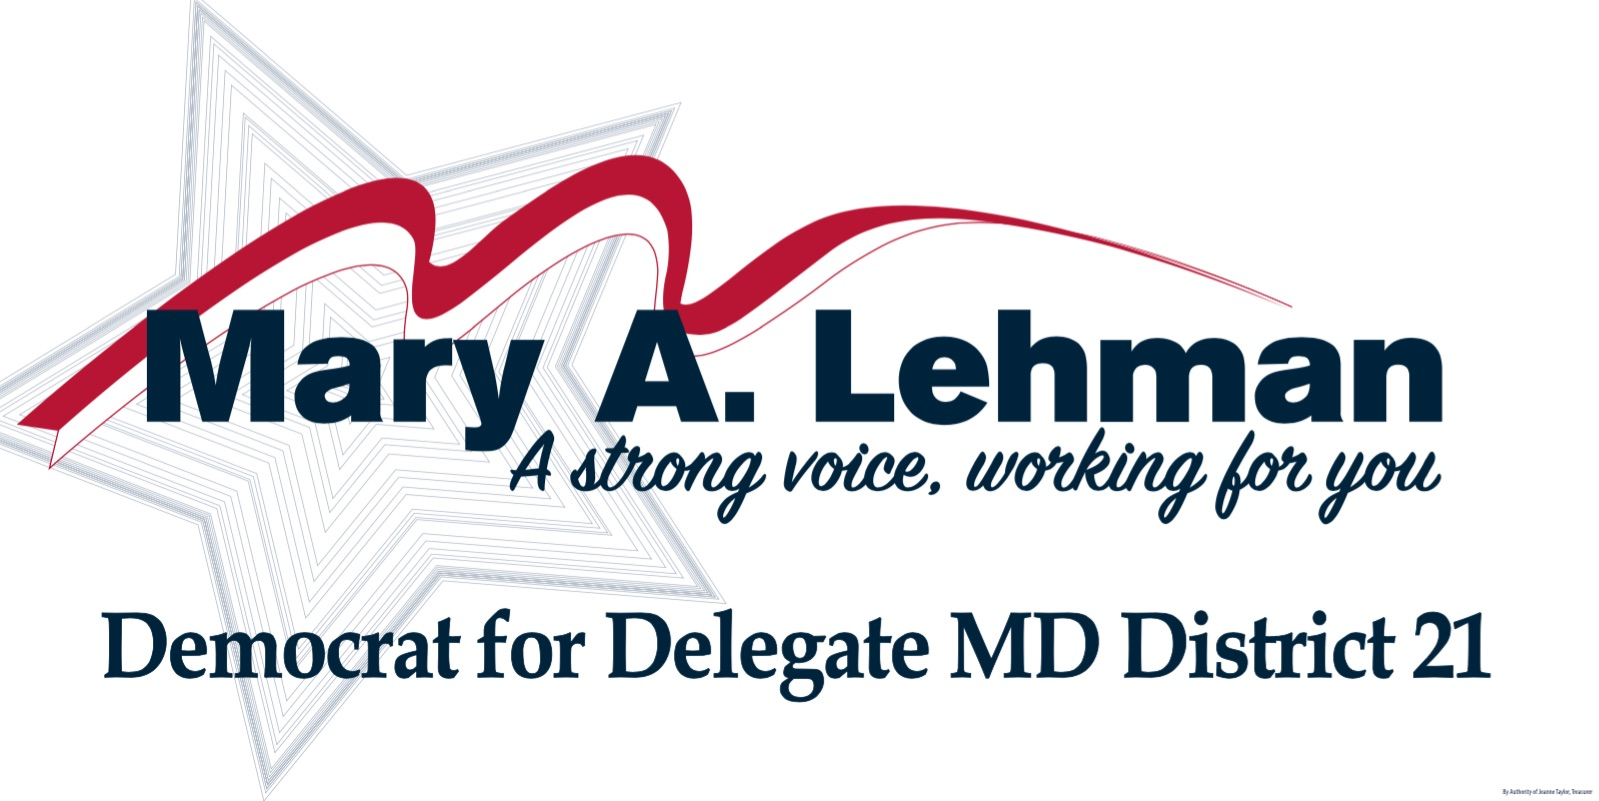 Mary Lehman for Delegate